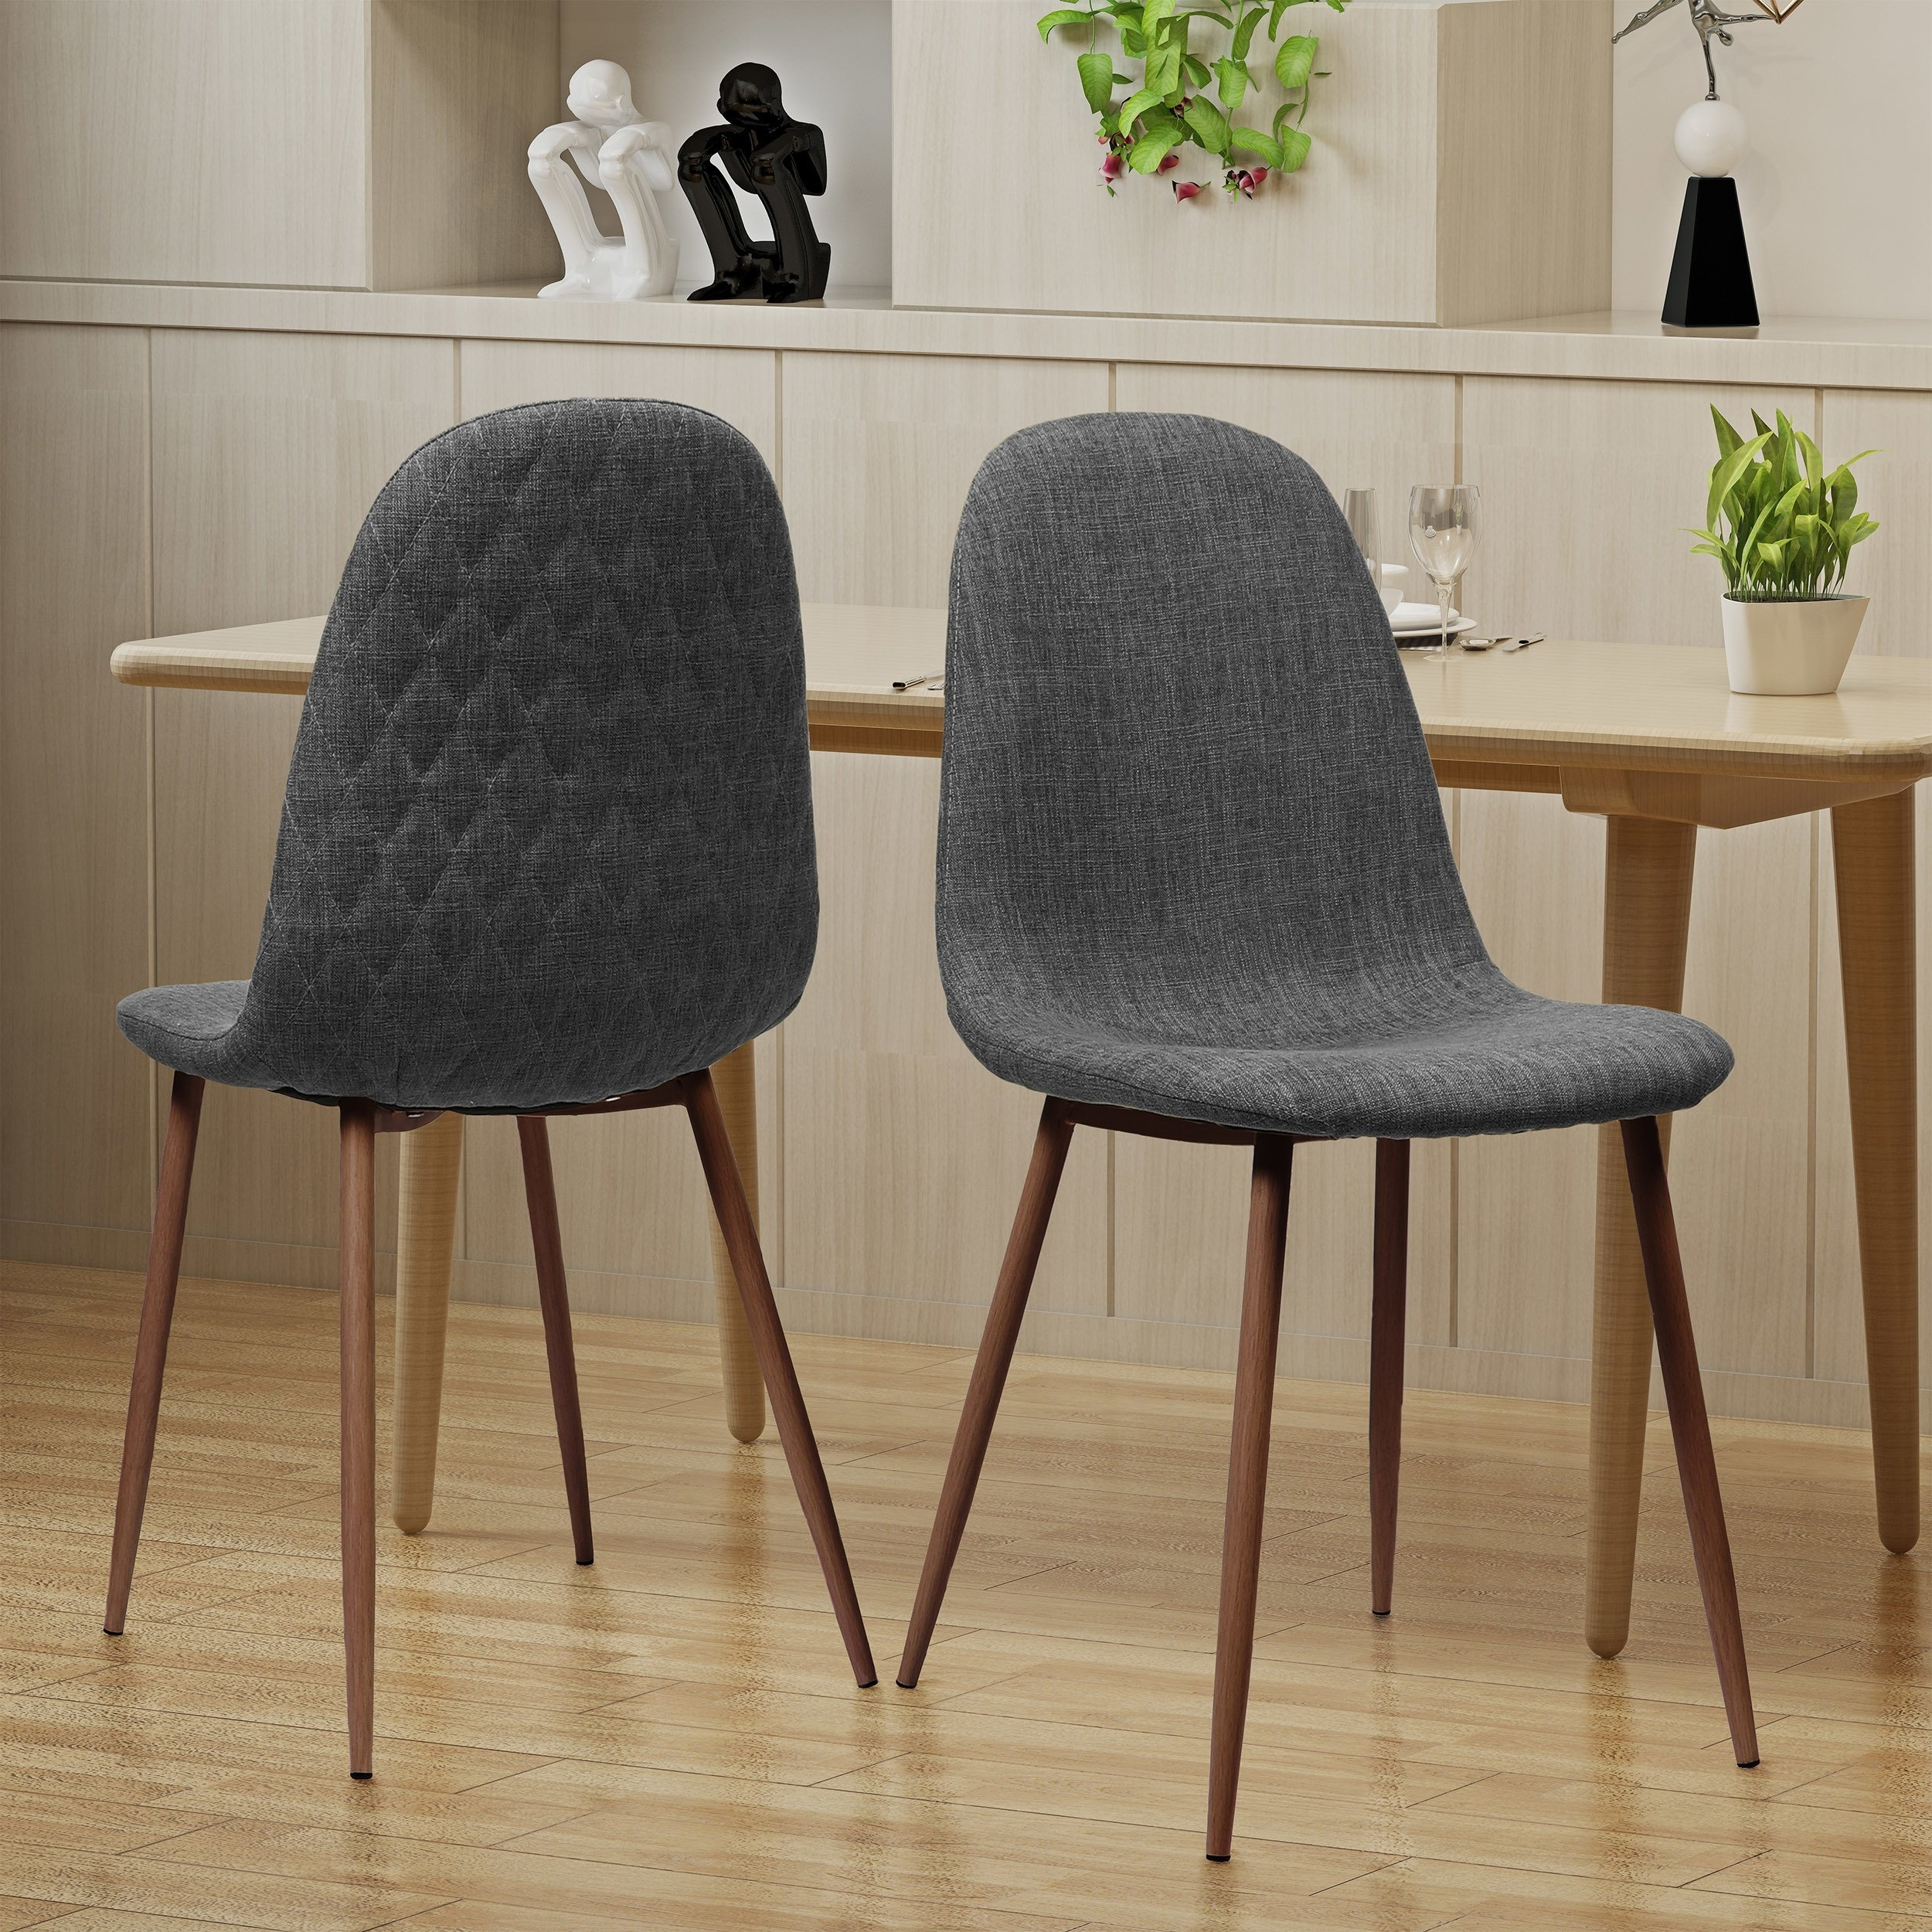 Shop Caden Mid Century Fabric Dining Chair (Set Of 2)Christopher Inside 2017 Caden 5 Piece Round Dining Sets With Upholstered Side Chairs (View 5 of 25)